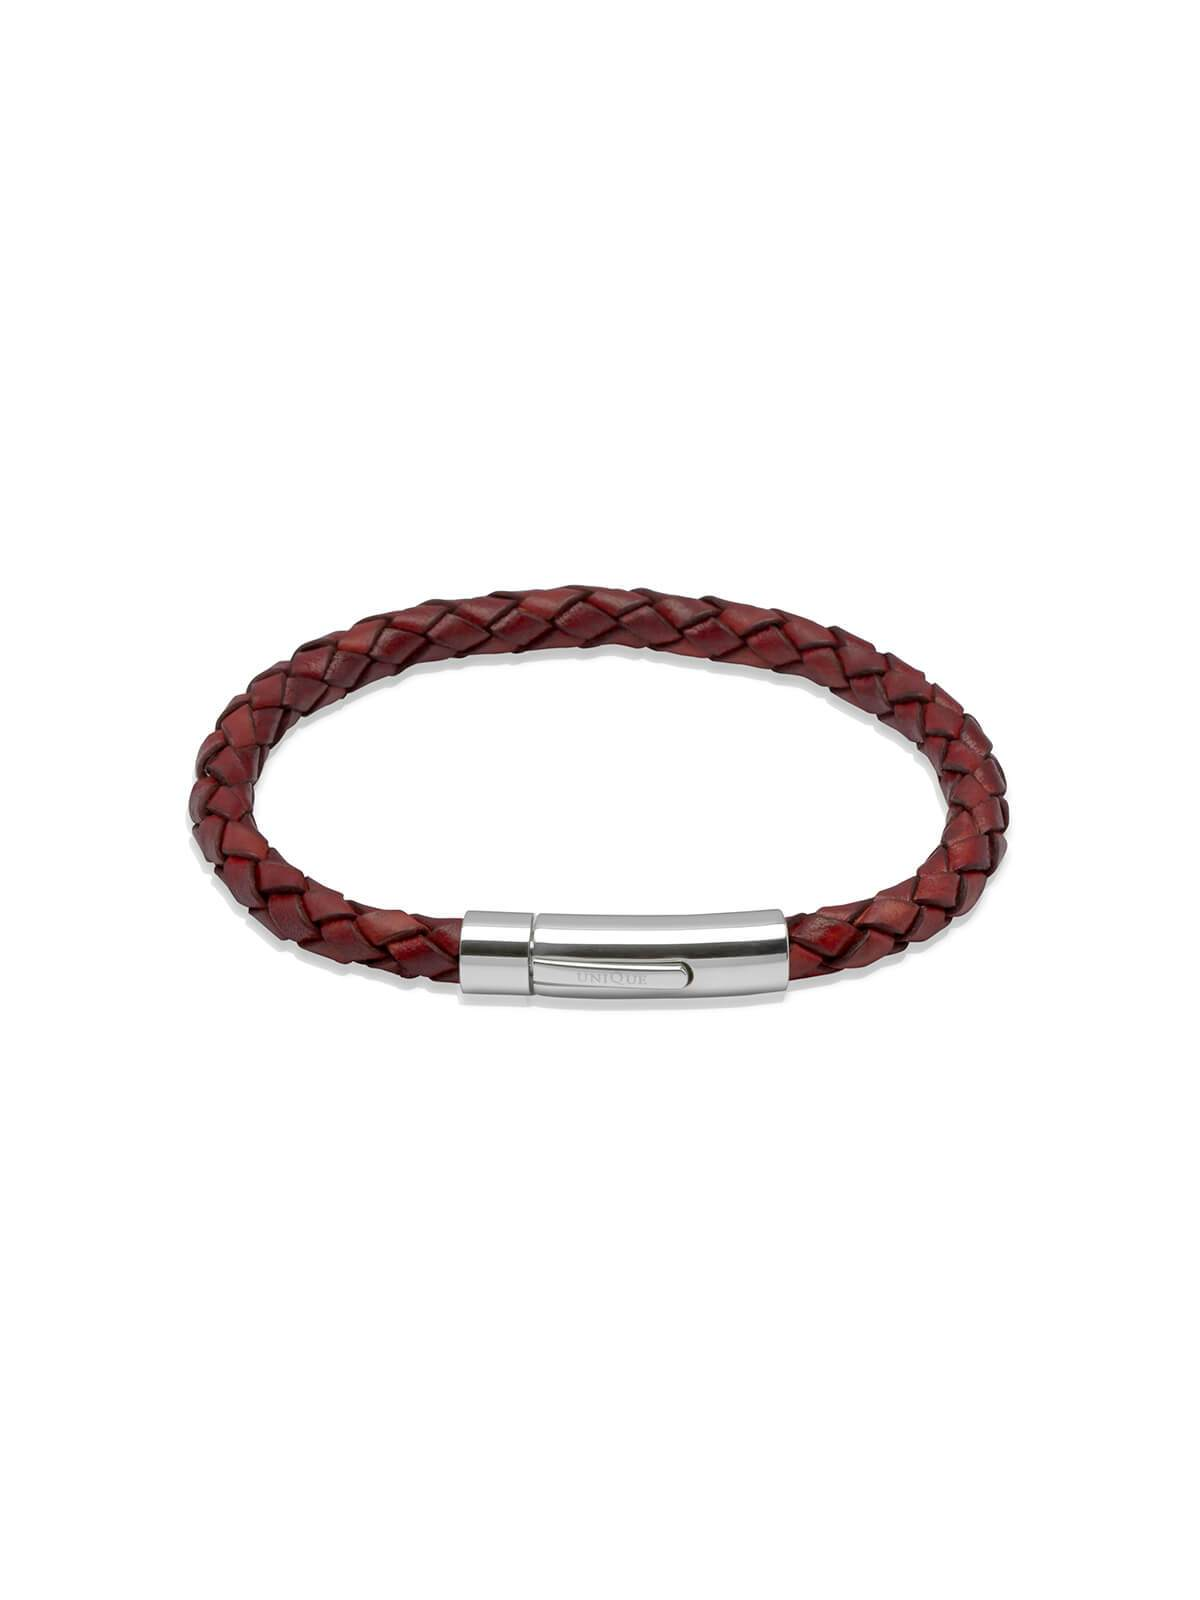 Unique & Co. 21cm Antique Tan Leather Bracelet A40ATA/21CM